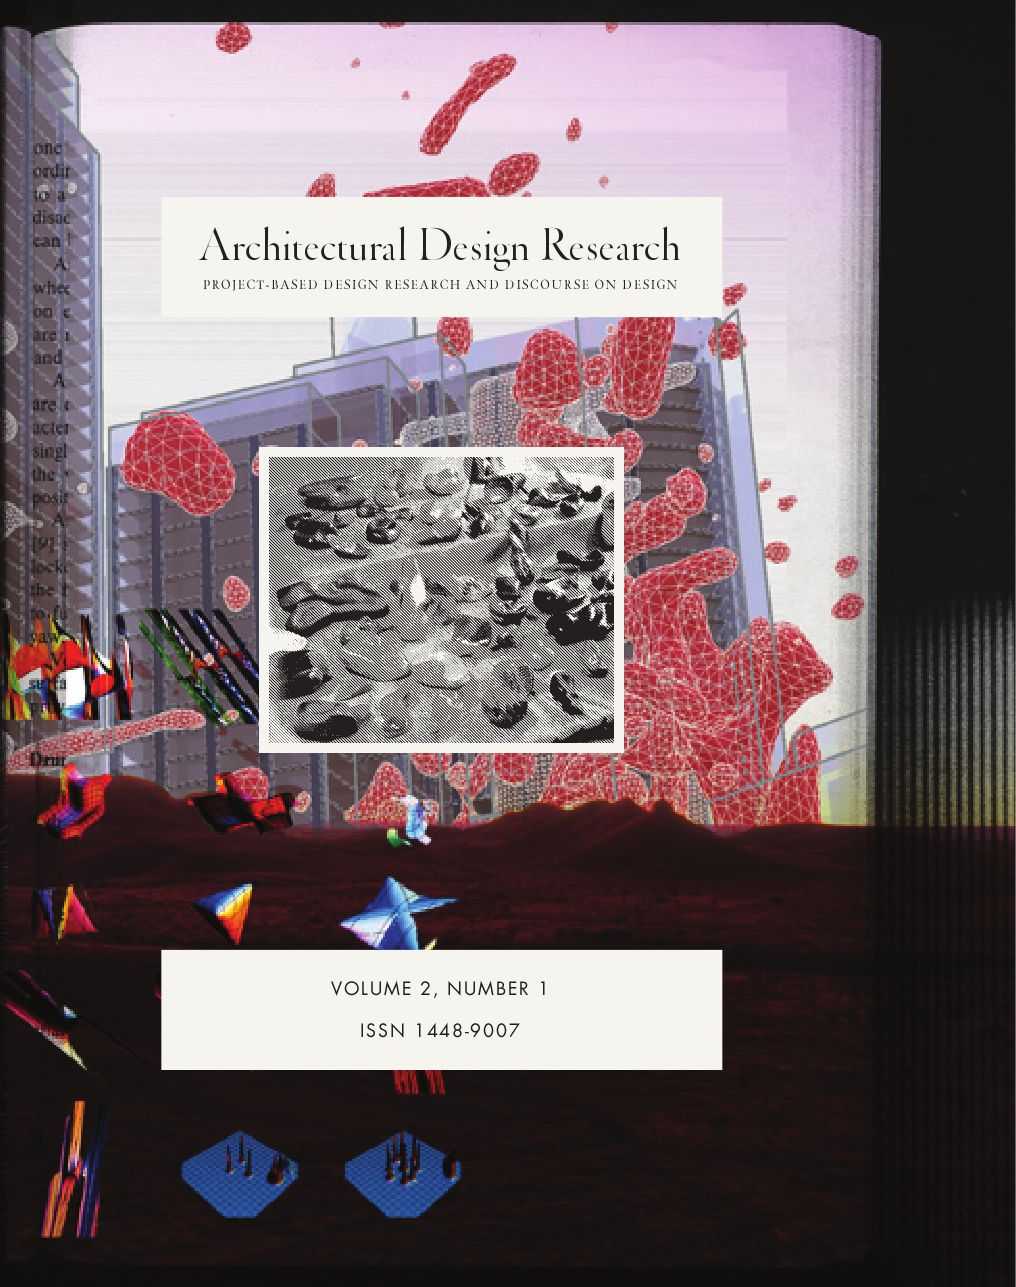 Architectural design research vol 2 no 1 by brent for Architectural design vol 82 no